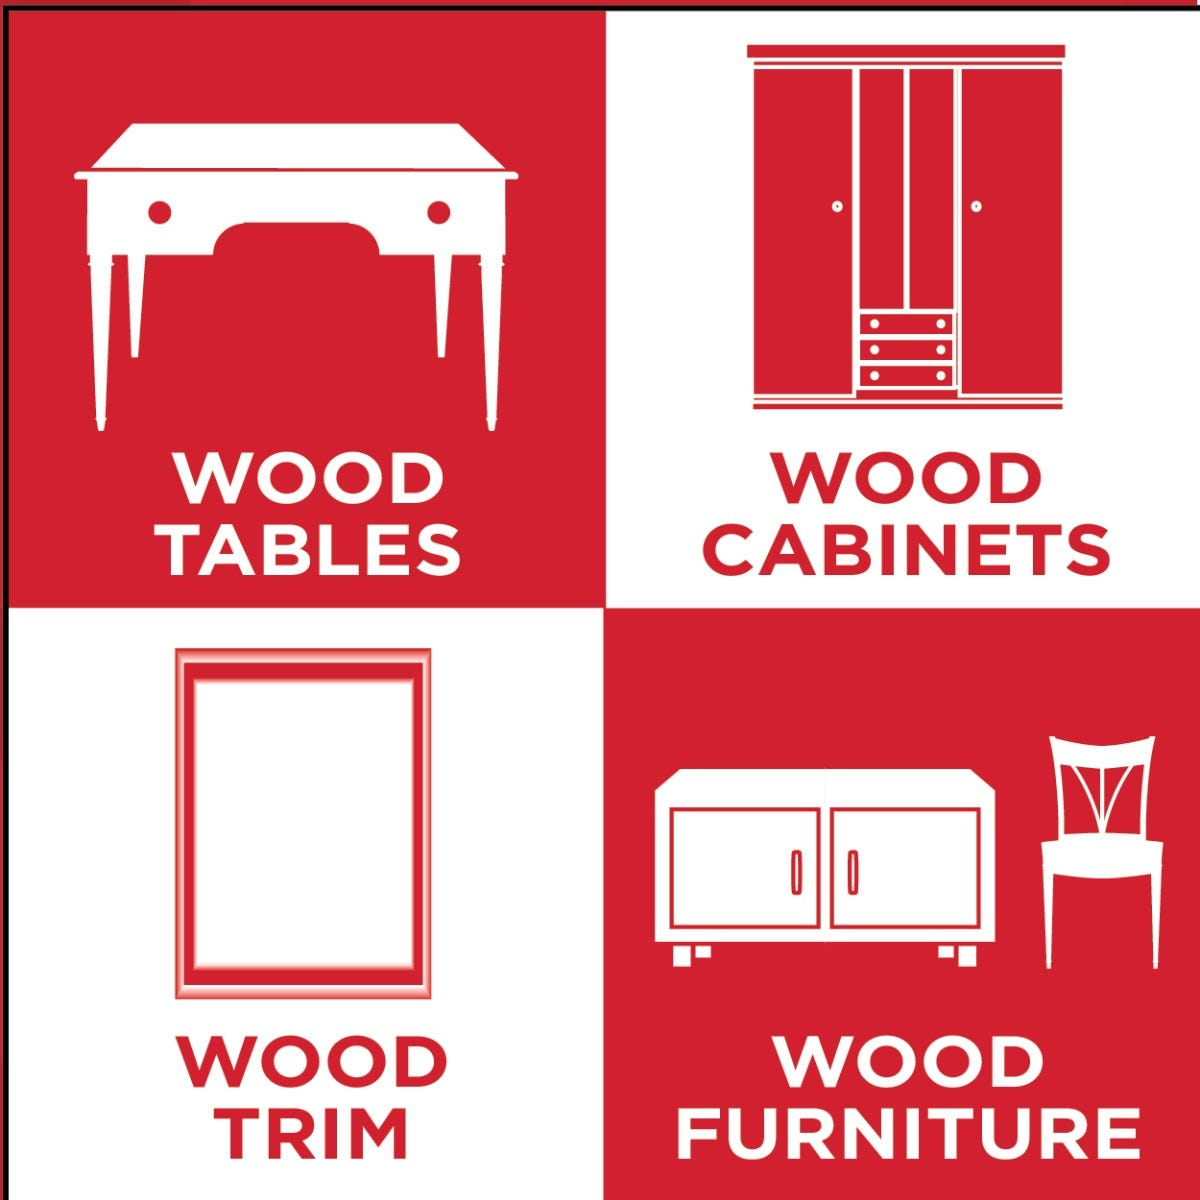 Uses for Magic Cabinet & Wood Cleaner